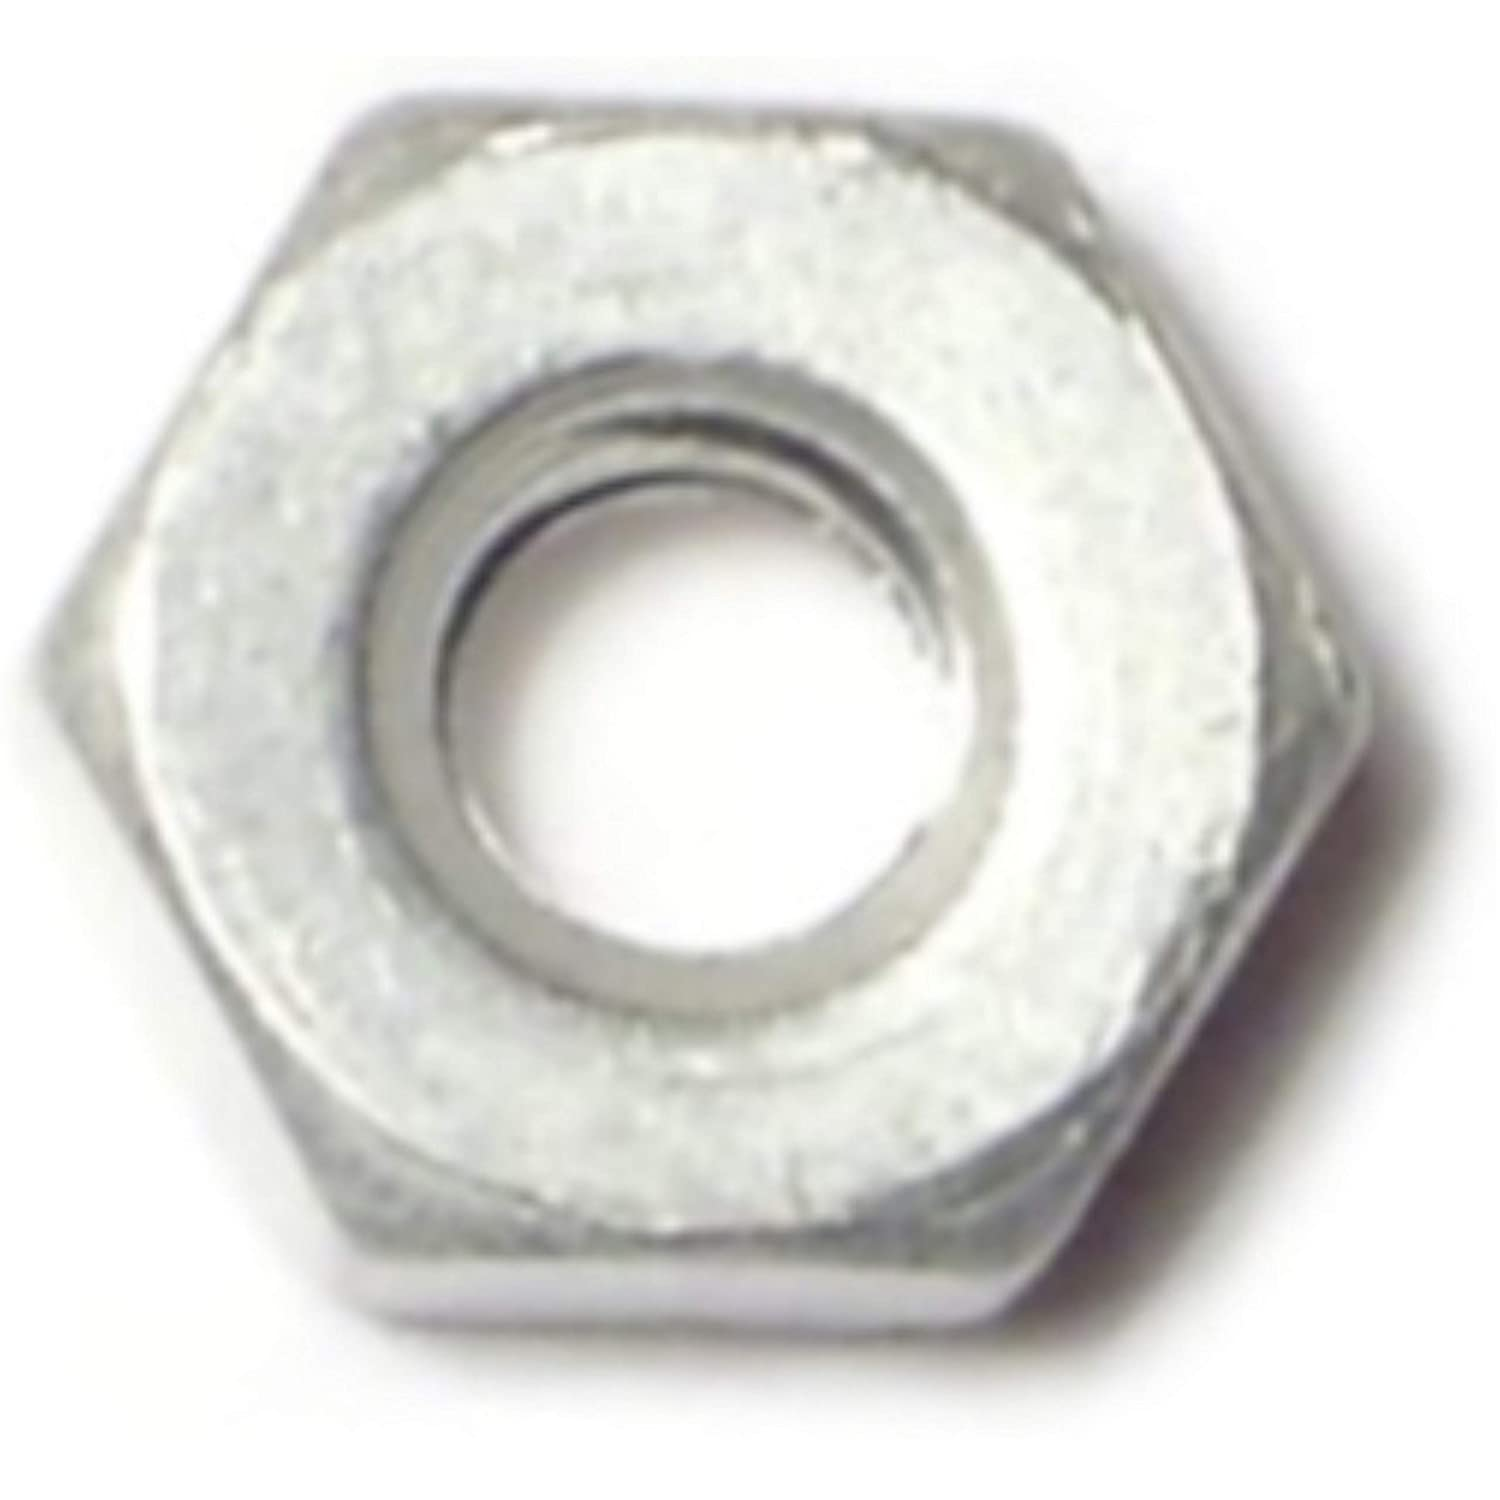 8-32 Piece-40 Hard-to-Find Fastener 014973120726 Finished Hex Nuts